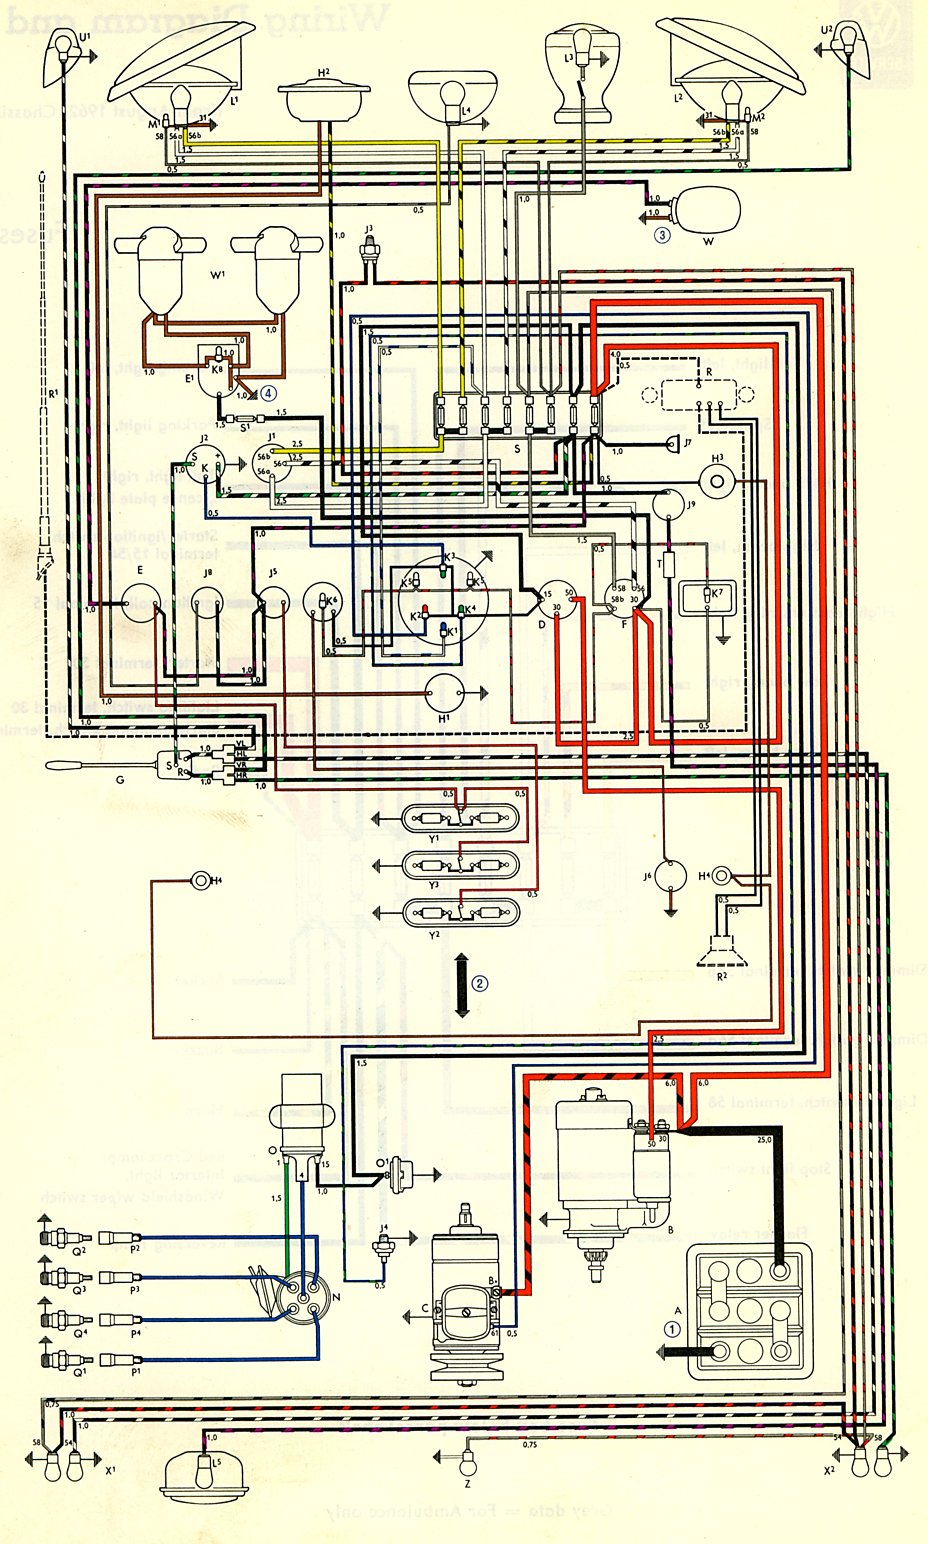 bus_63 1963 bus wiring diagram thegoldenbug com Volkswagen Type 2 Wiring Harness at crackthecode.co